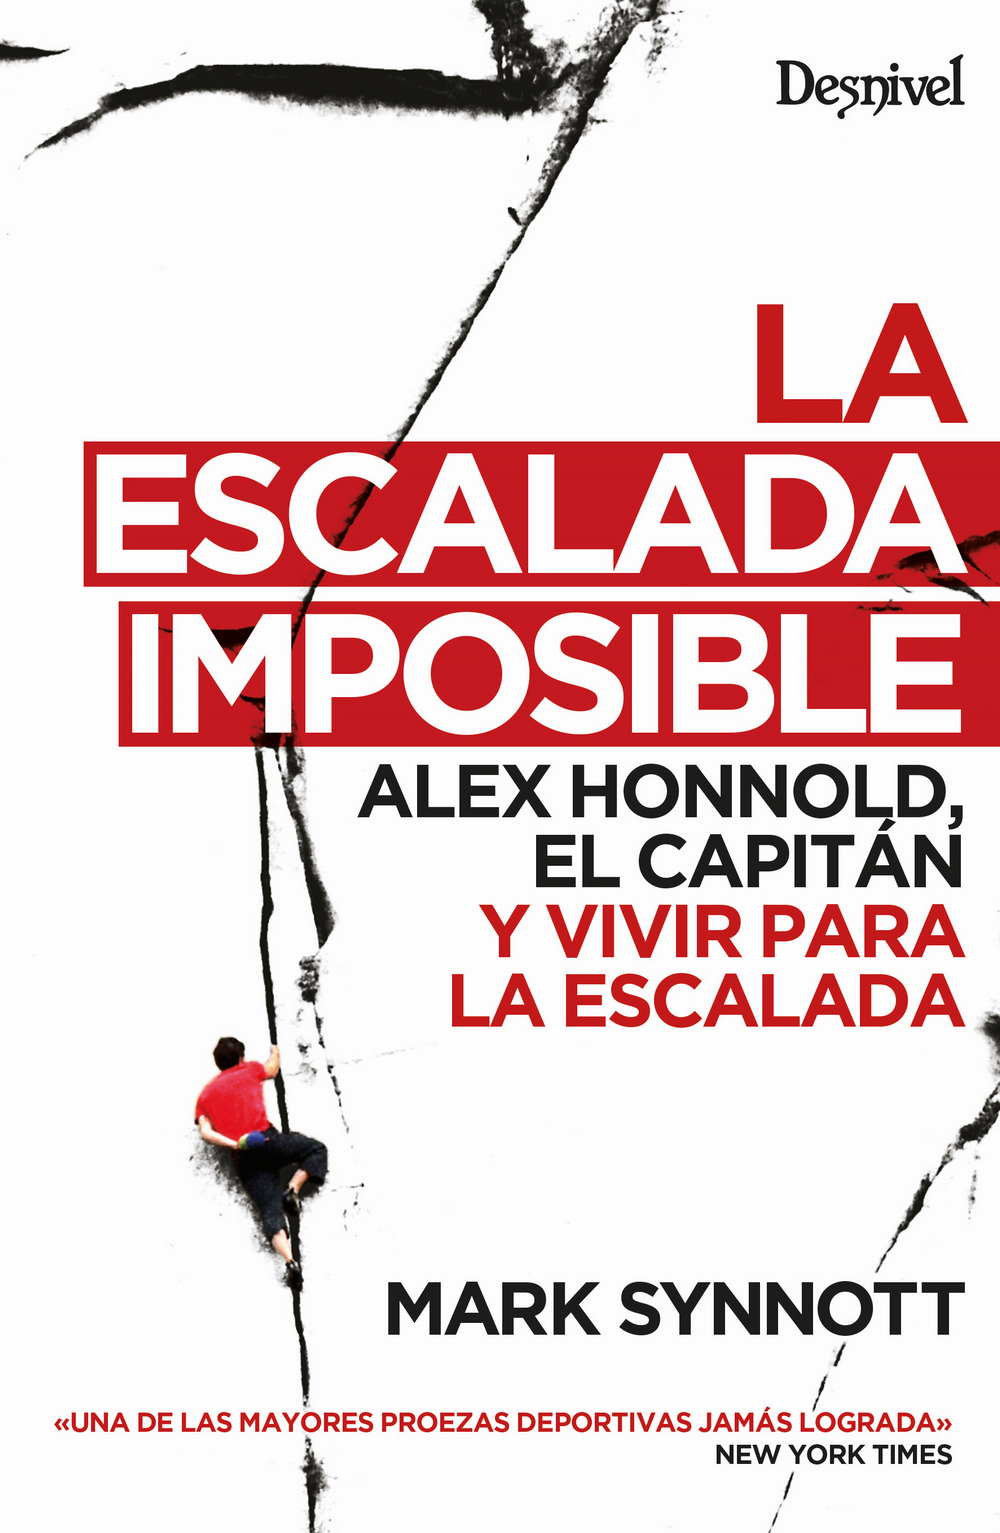 La escalada imposible